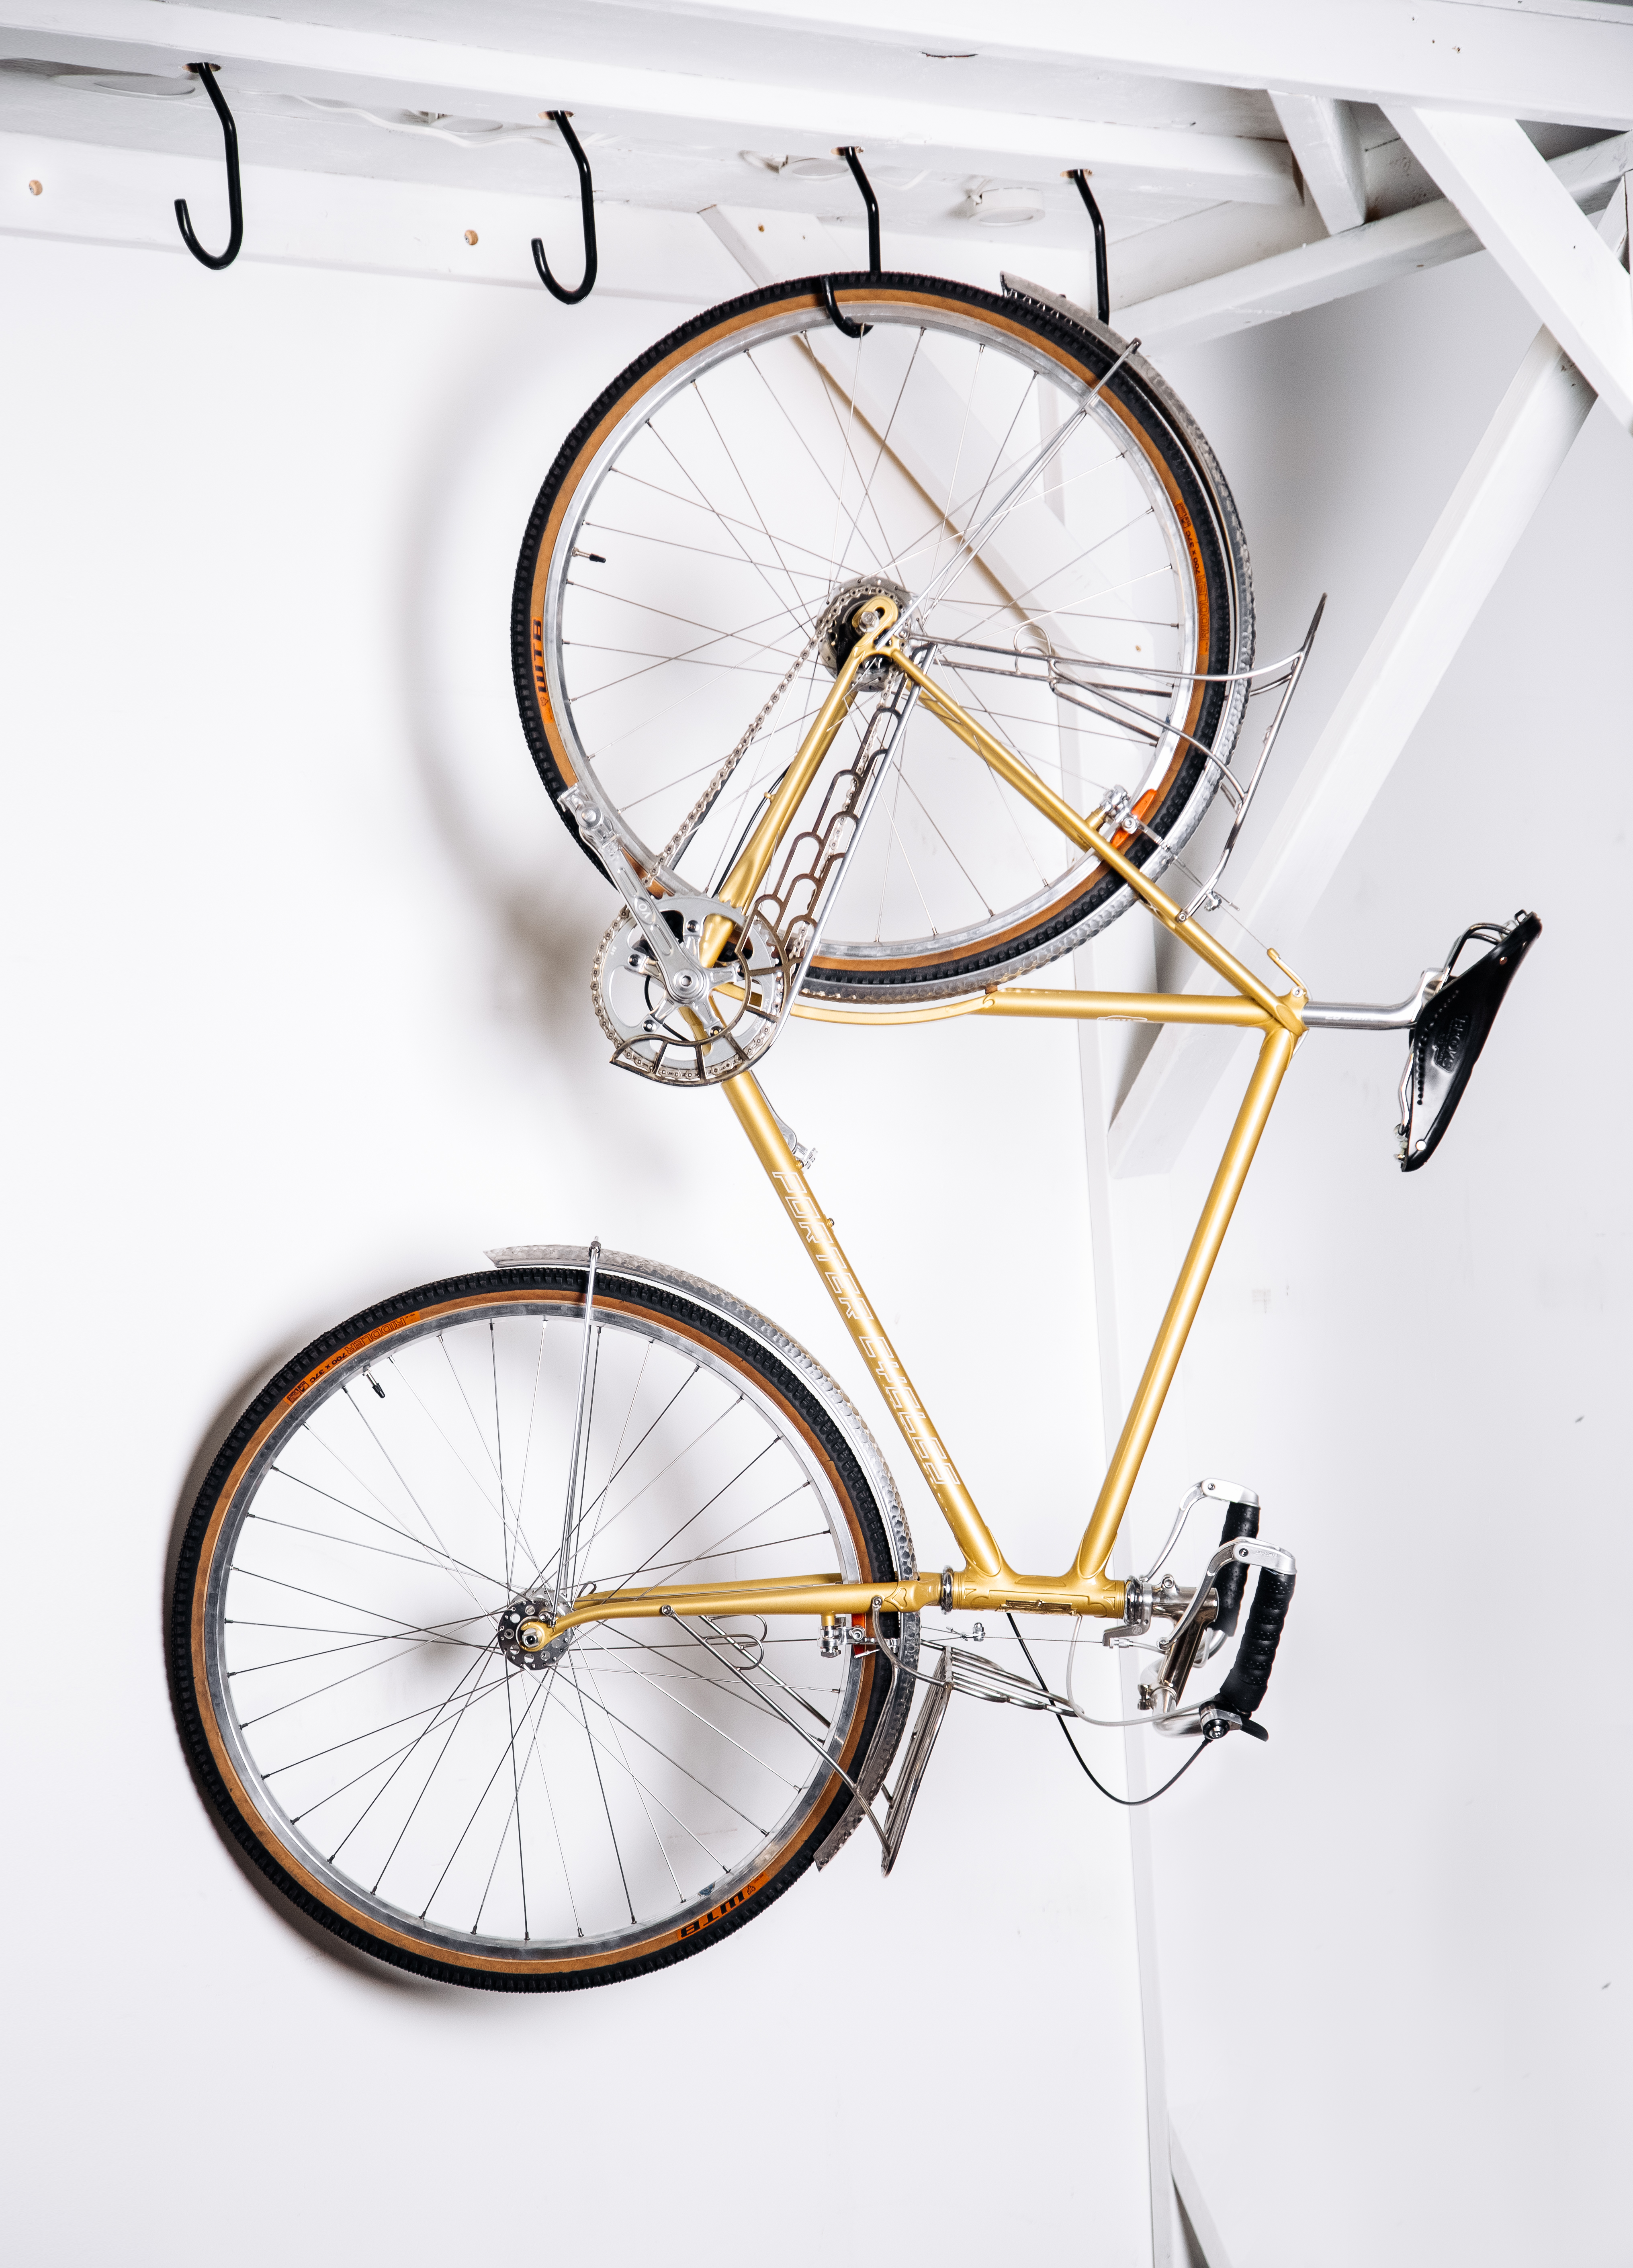 bike, bicycle, porteur, golden, art deco, deco, cargo